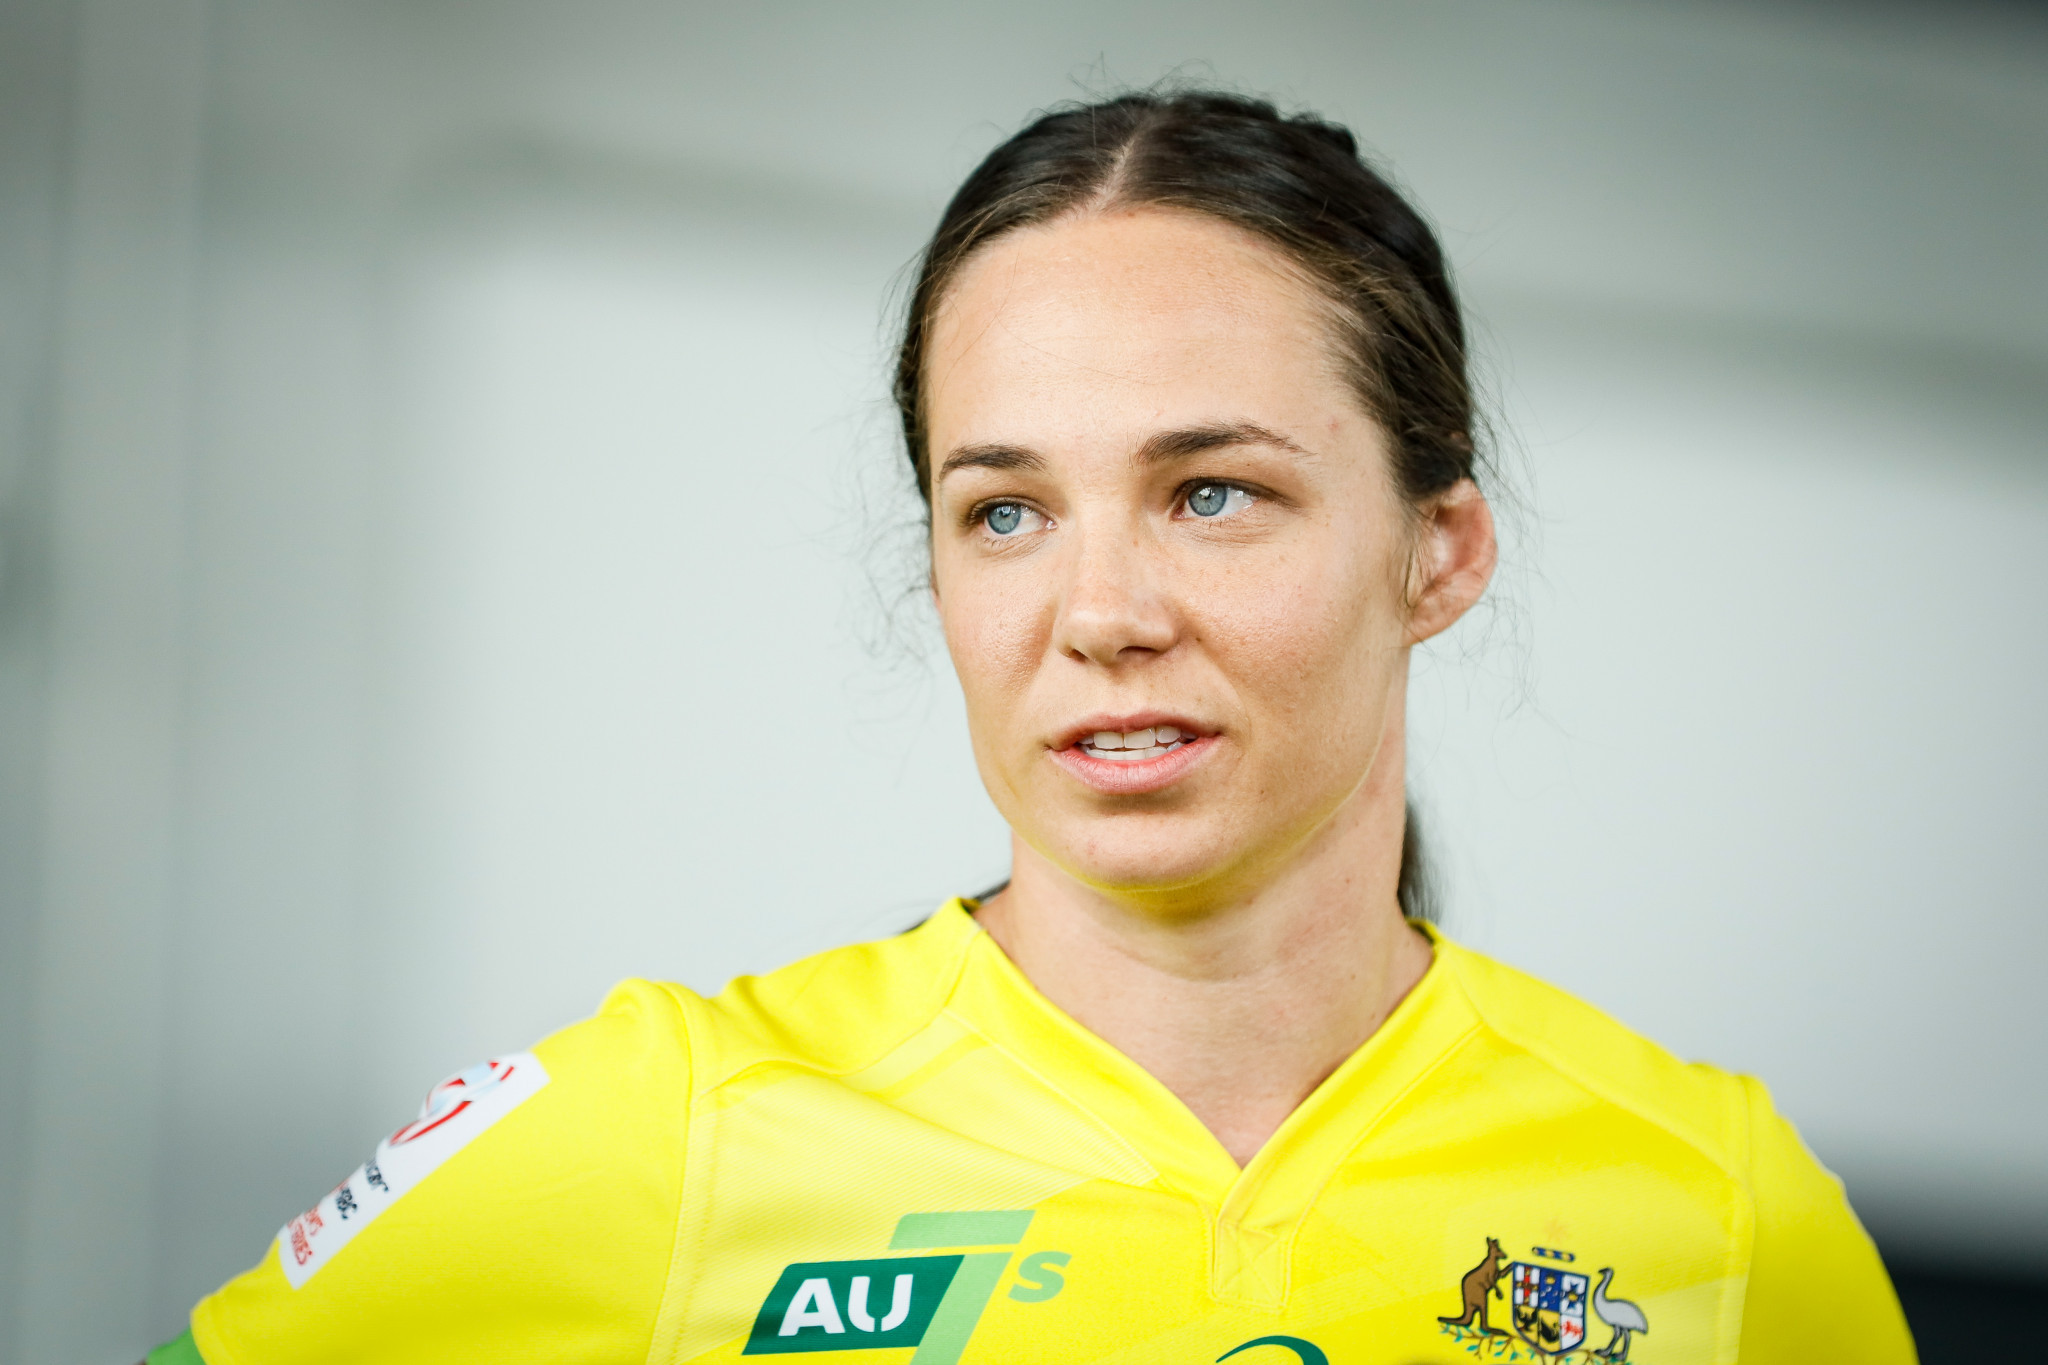 Rugby sevens player Dalton rules out AFLW return to prepare for Tokyo 2020